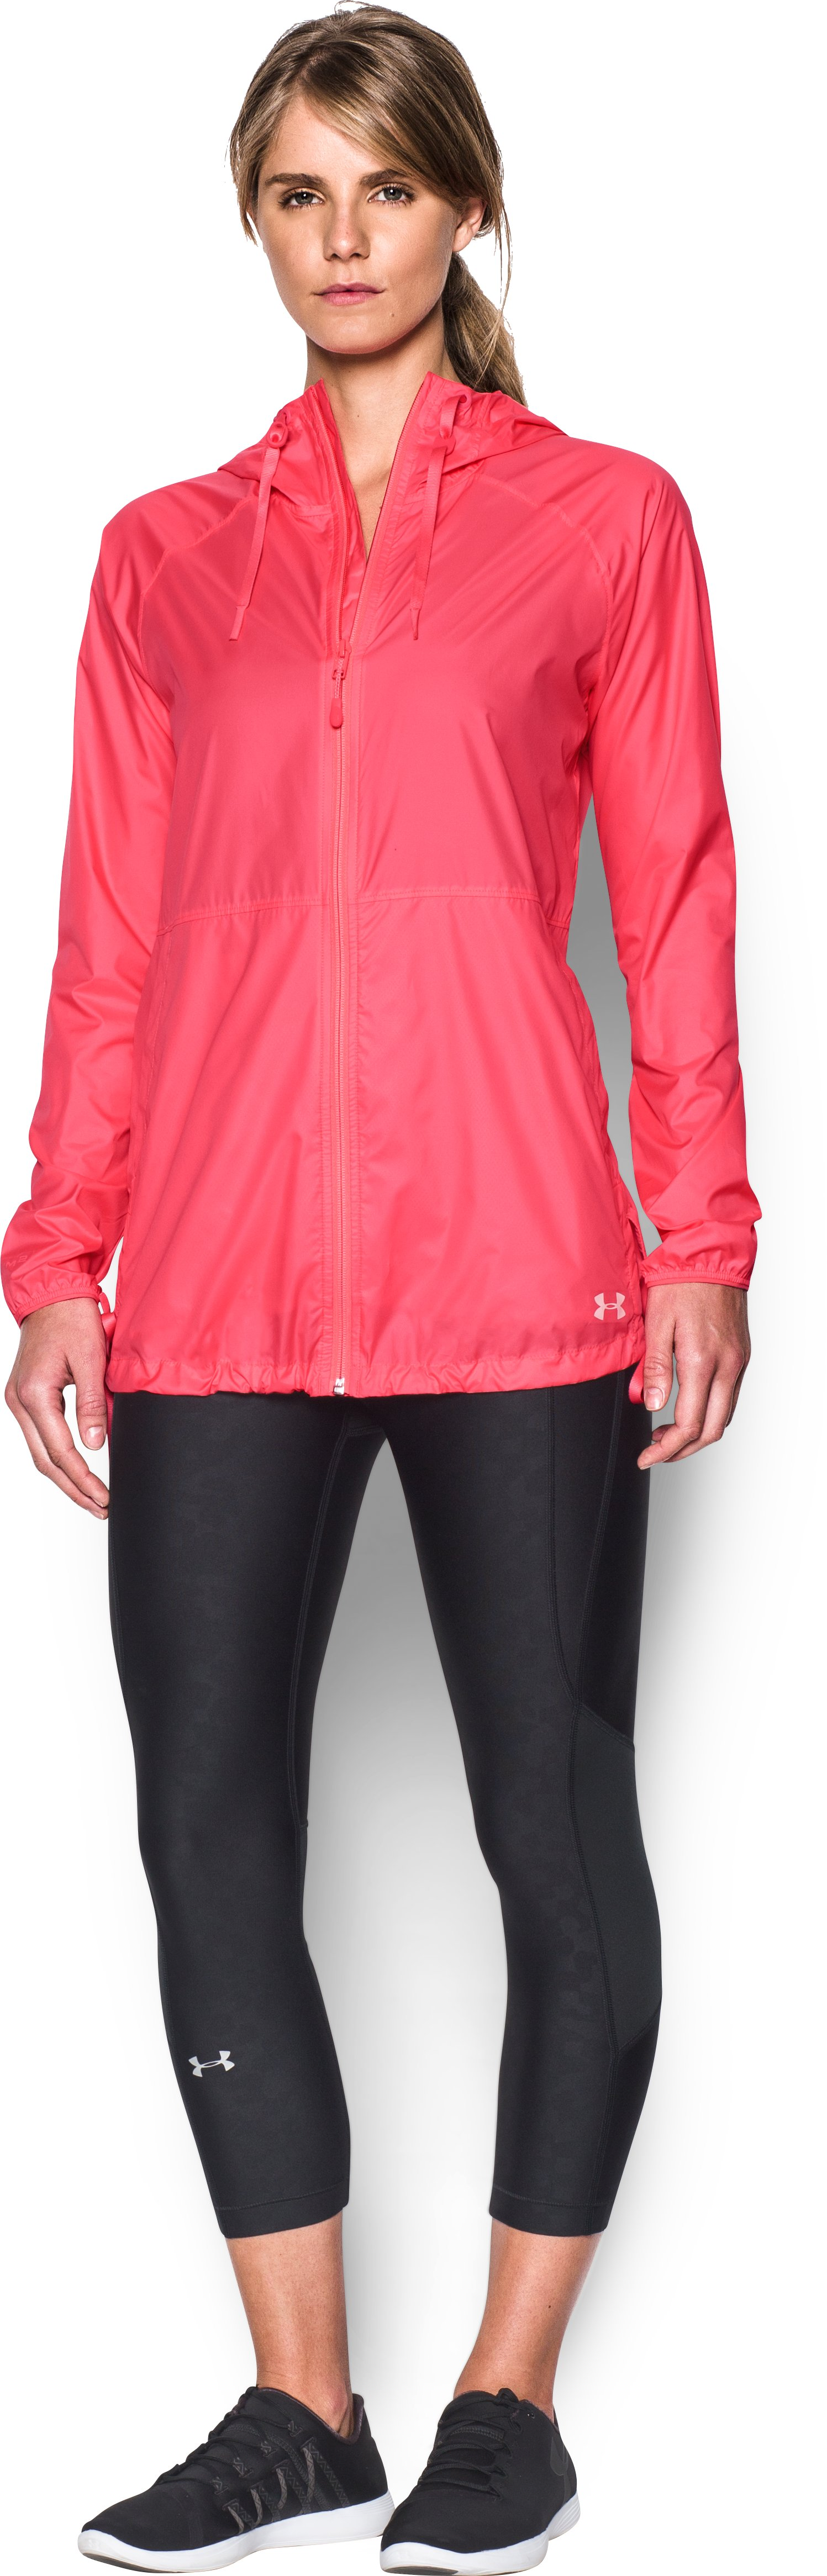 Women's UA Do Anything Jacket, Perfection, Front